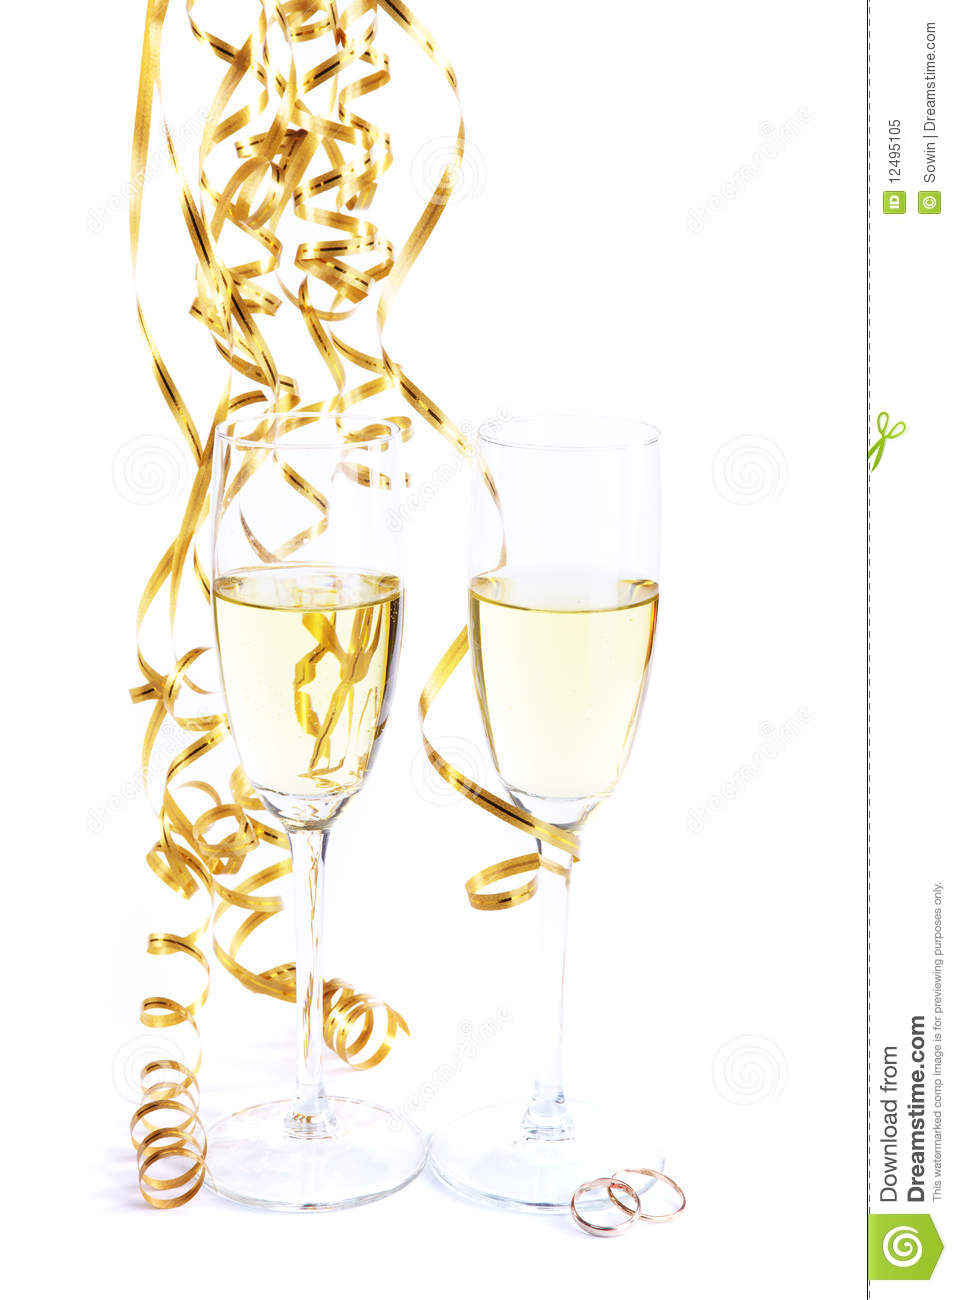 Two wine glasses and wedding rings